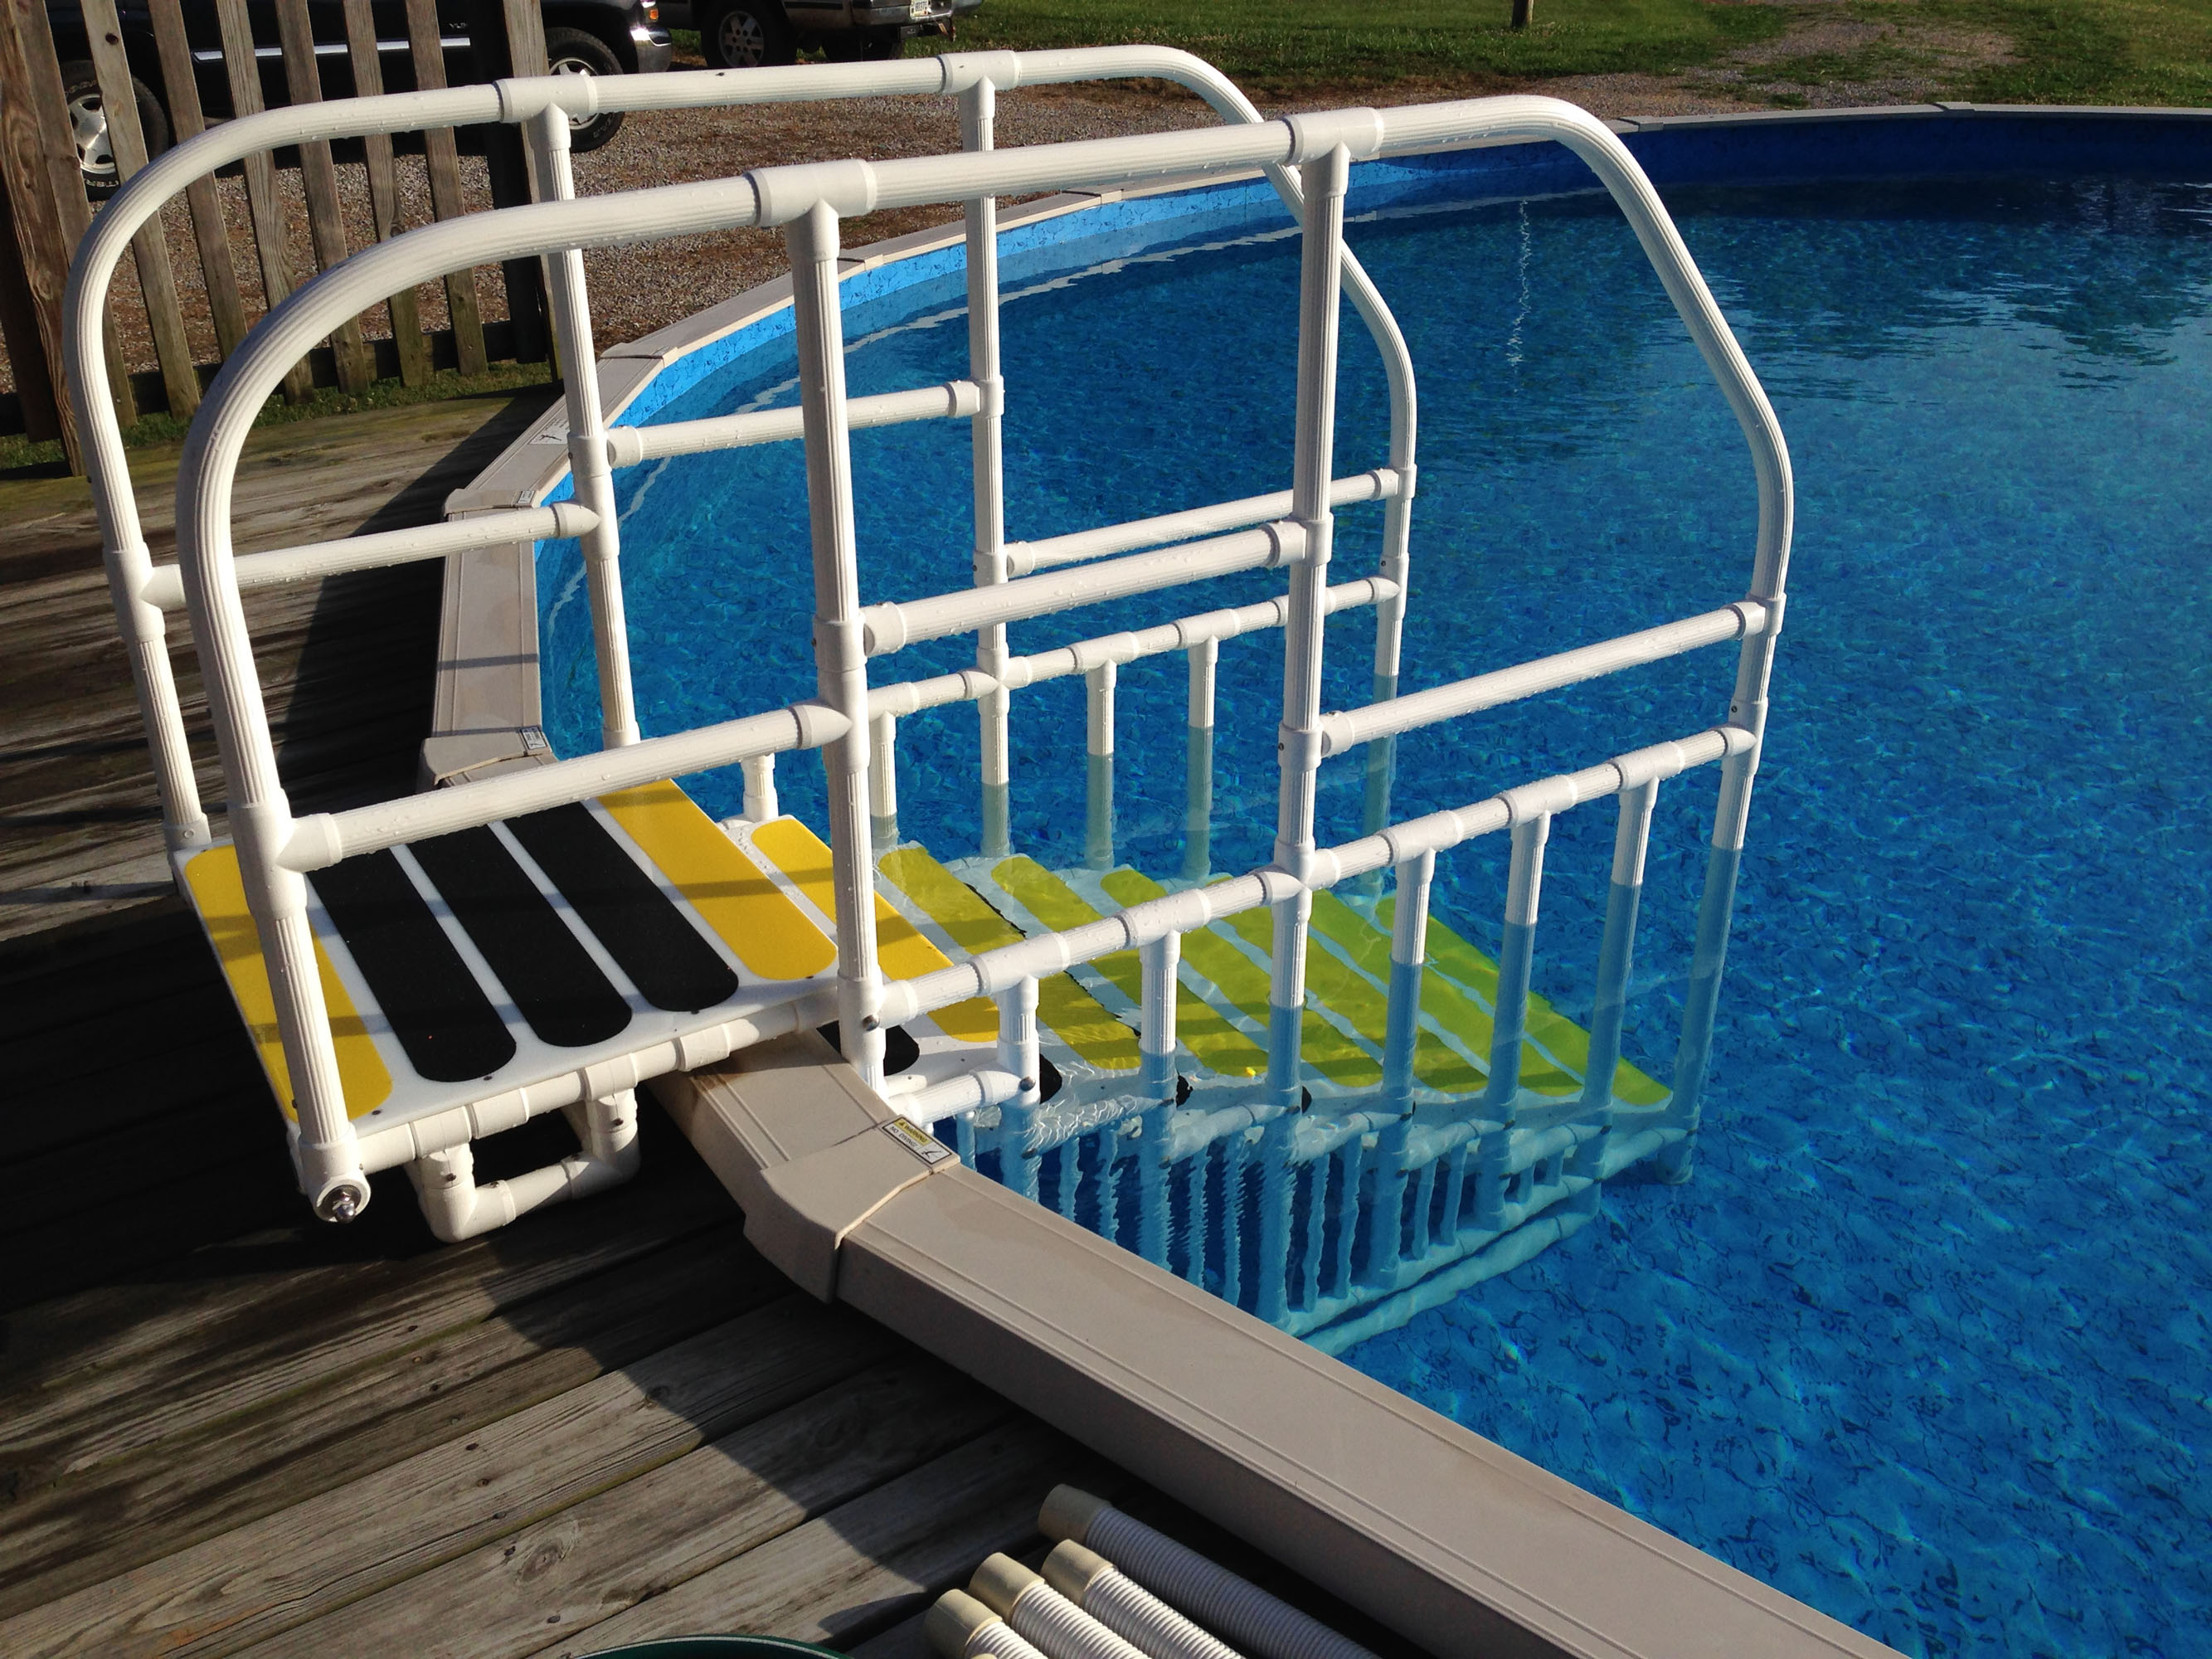 pool ladder above ground pool